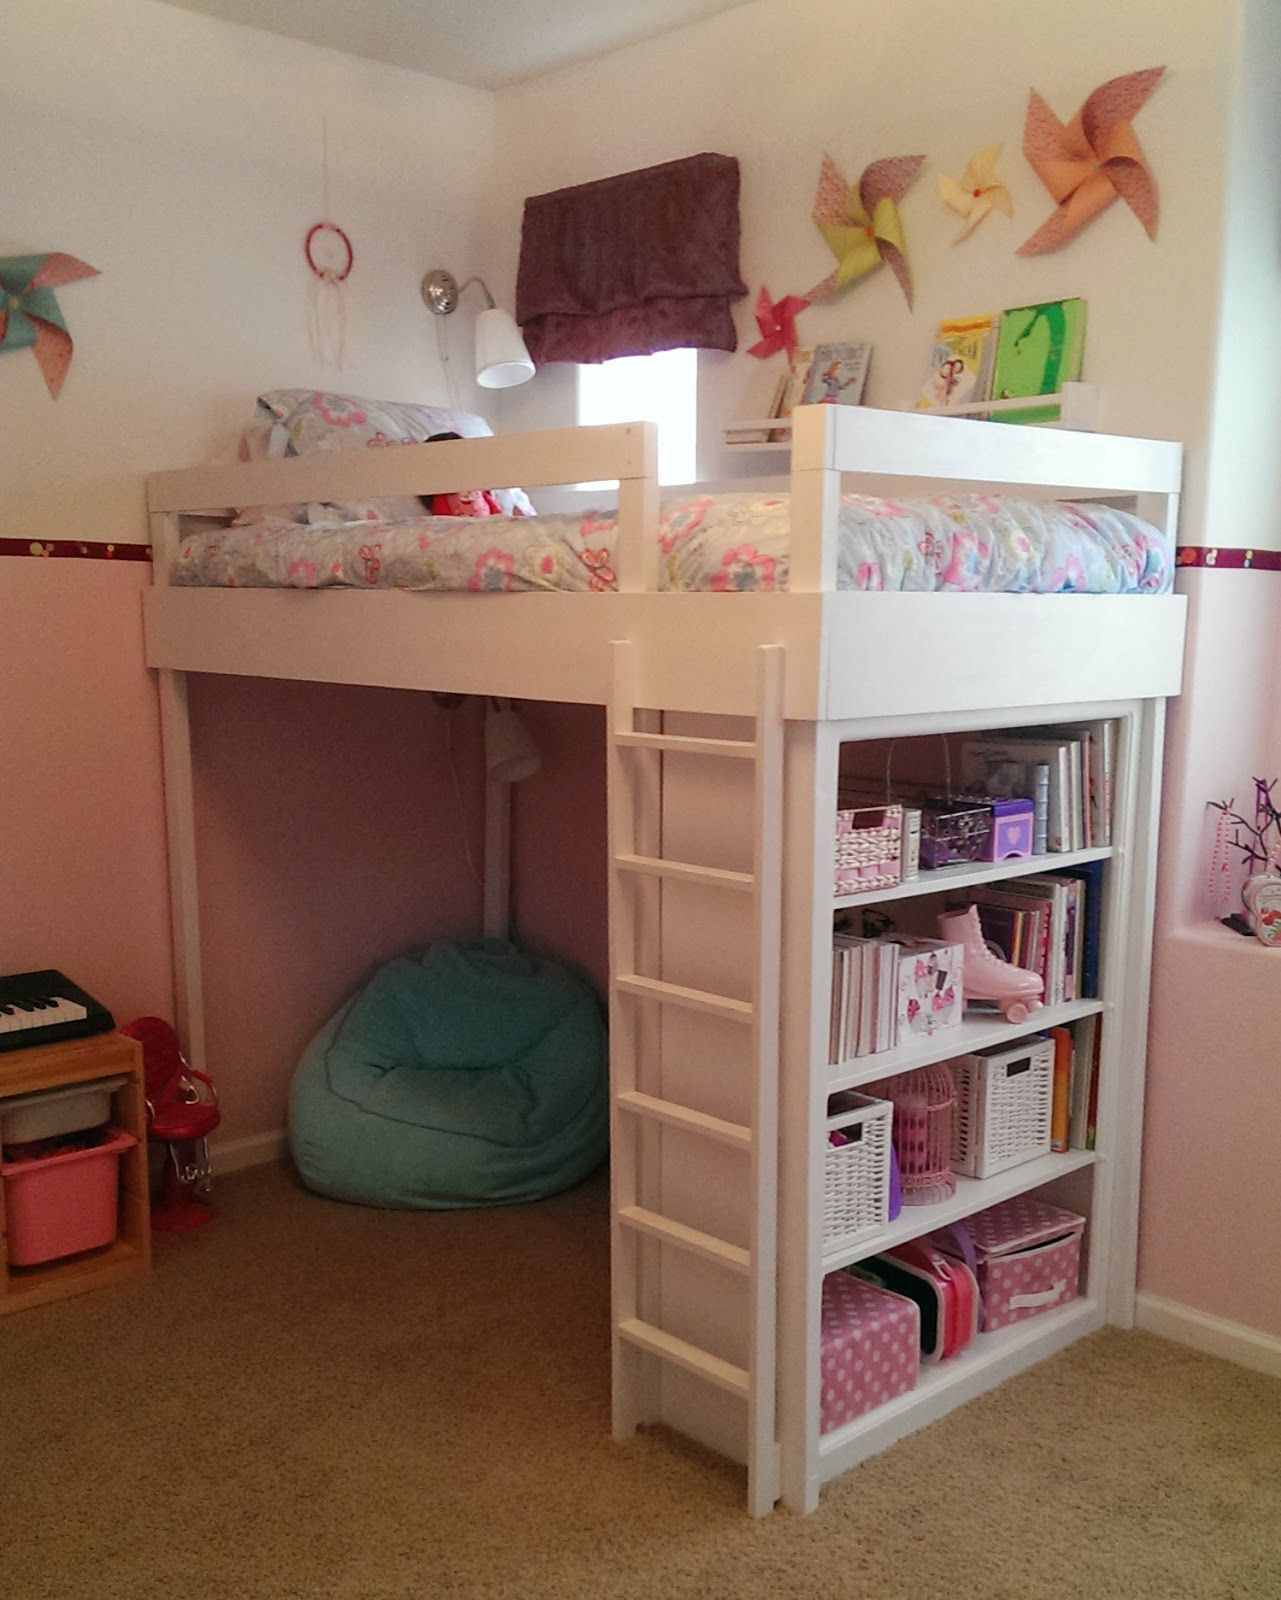 Loft bed with desk full size mattress  Lovely Neighbors  DIY Loft bed for little girlus room  Bunk Bed